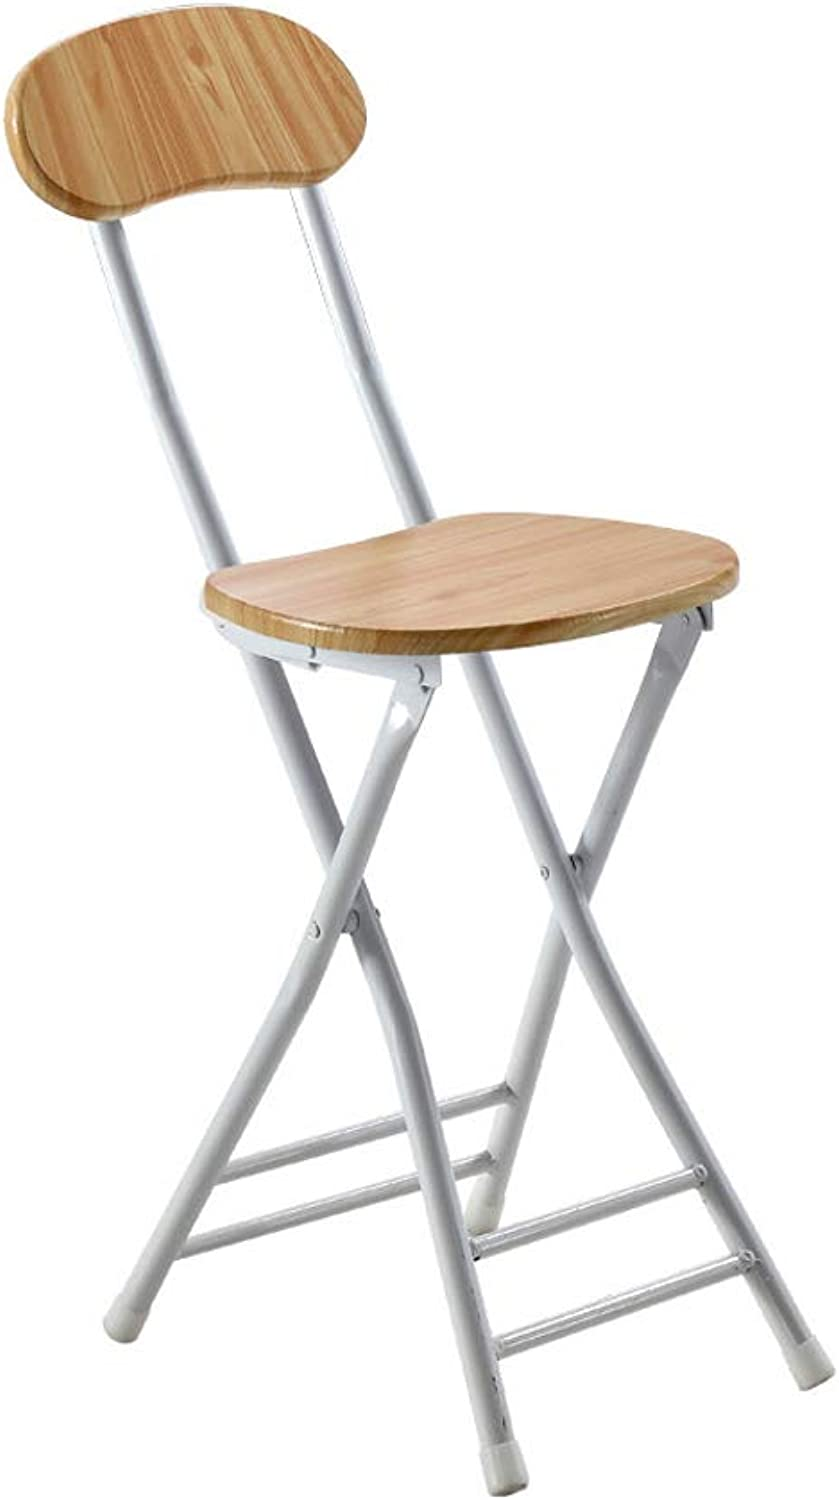 Dining Chair Home Change shoes Chair Back Chair Folding Chair Small Round Stool Meeting Chair Simple Fashion Portable Adult Wood Grain Back Folding Dining Chair